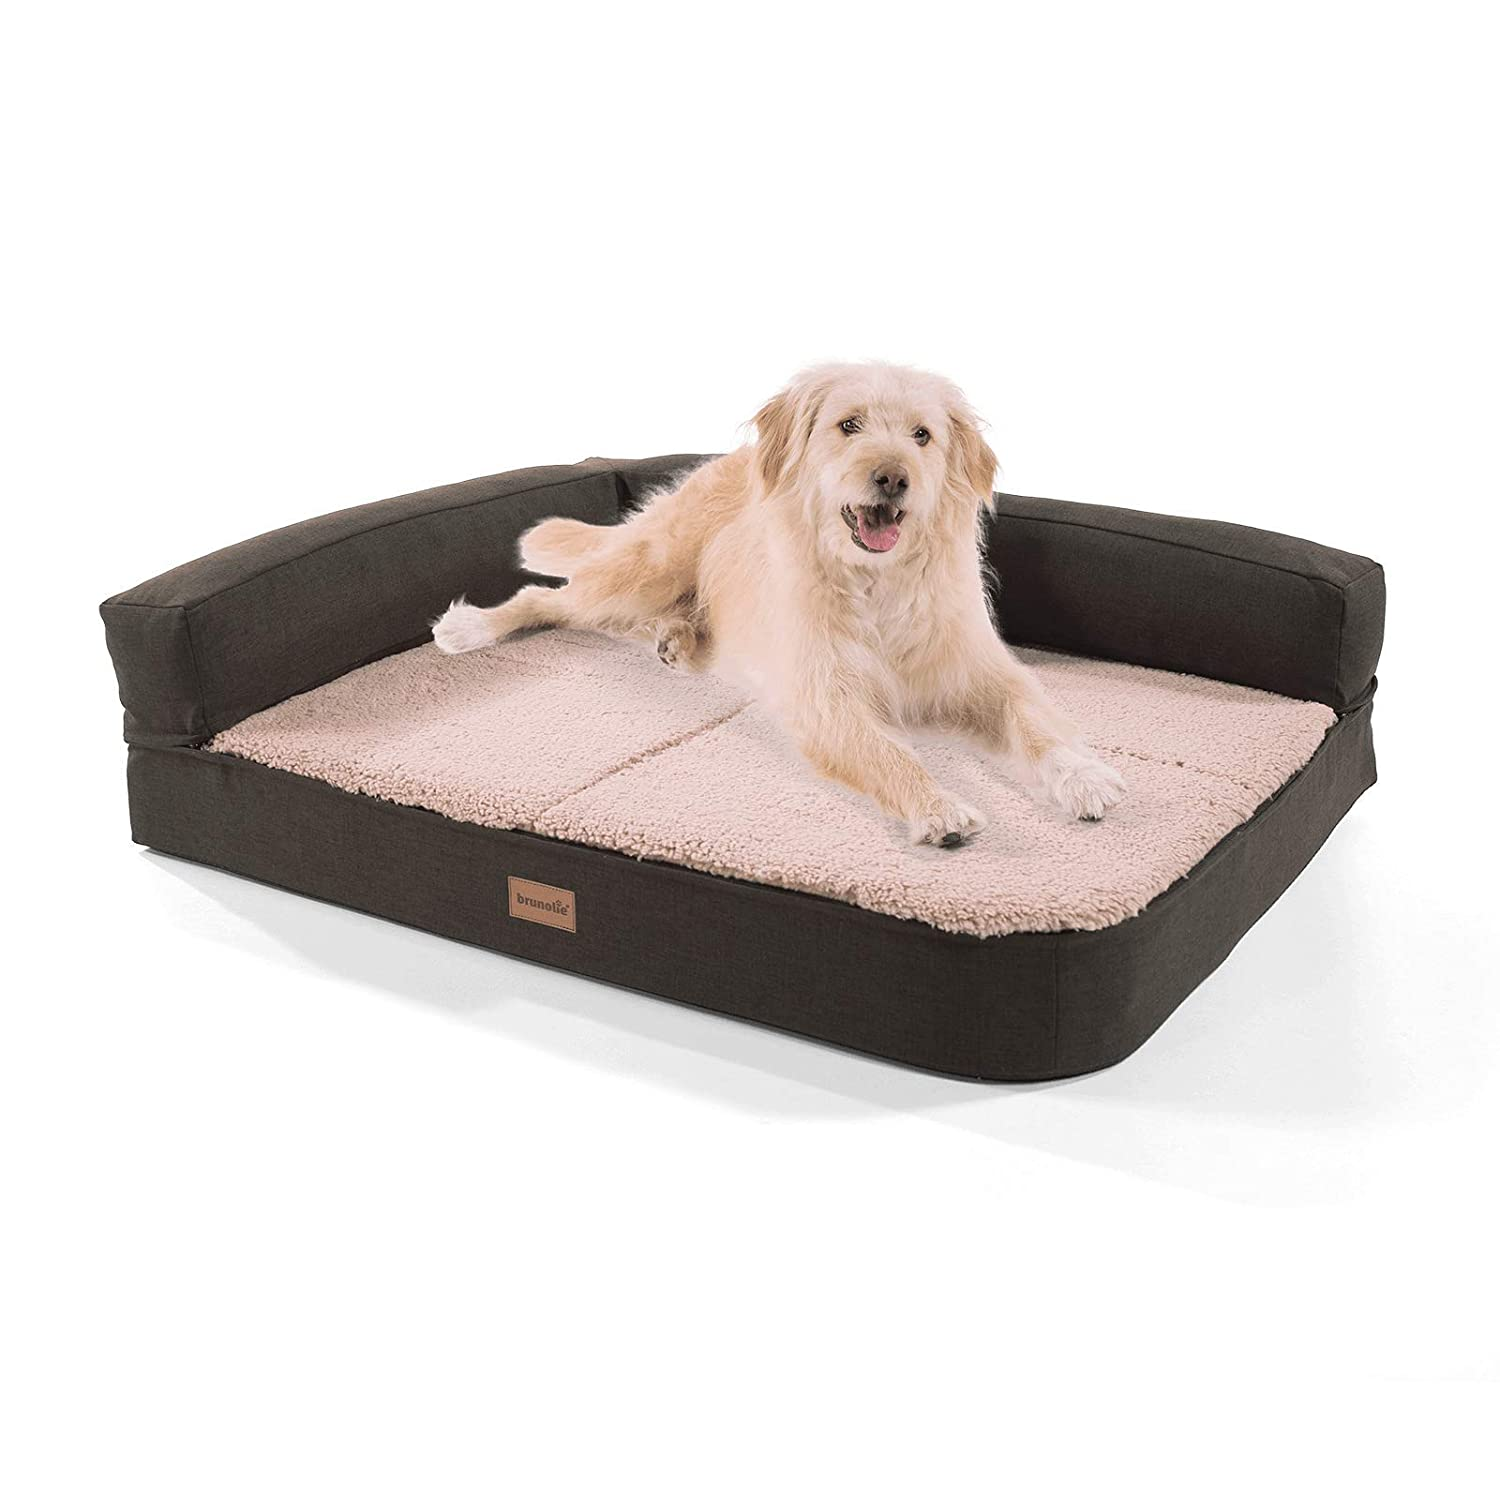 Beige medium 100 x 80 cmbrunolie  Odin dog sofa – washable, orthopaedic and nonslip dog bed in darkbrown with cuddly plush, size L